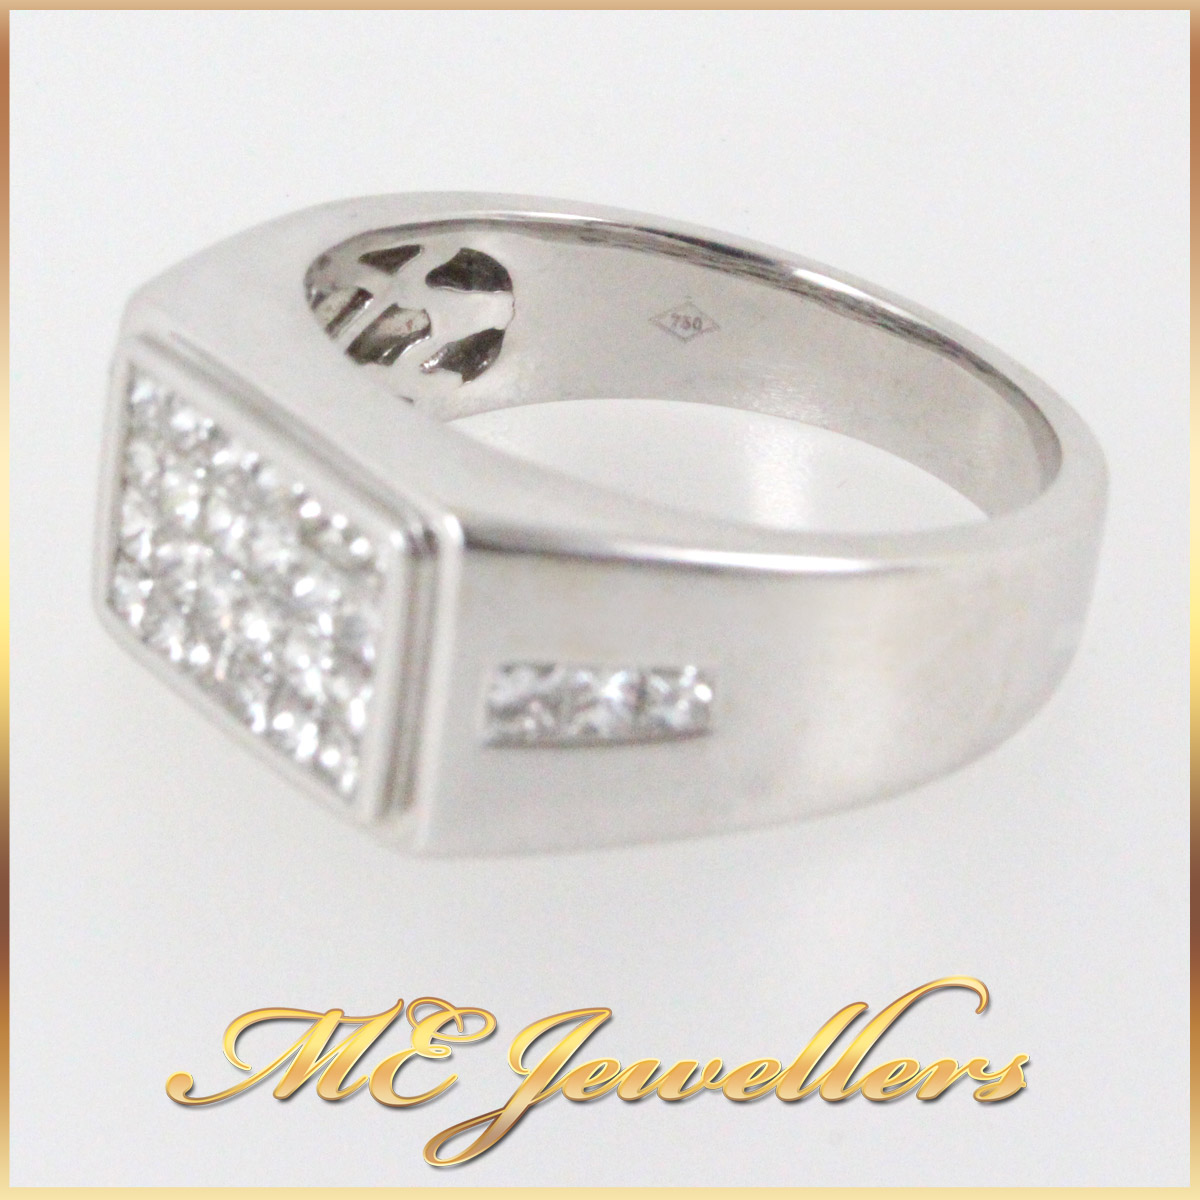 345 Mens Dress Ring With Illision Set Diamond in 18K White Gold stamp